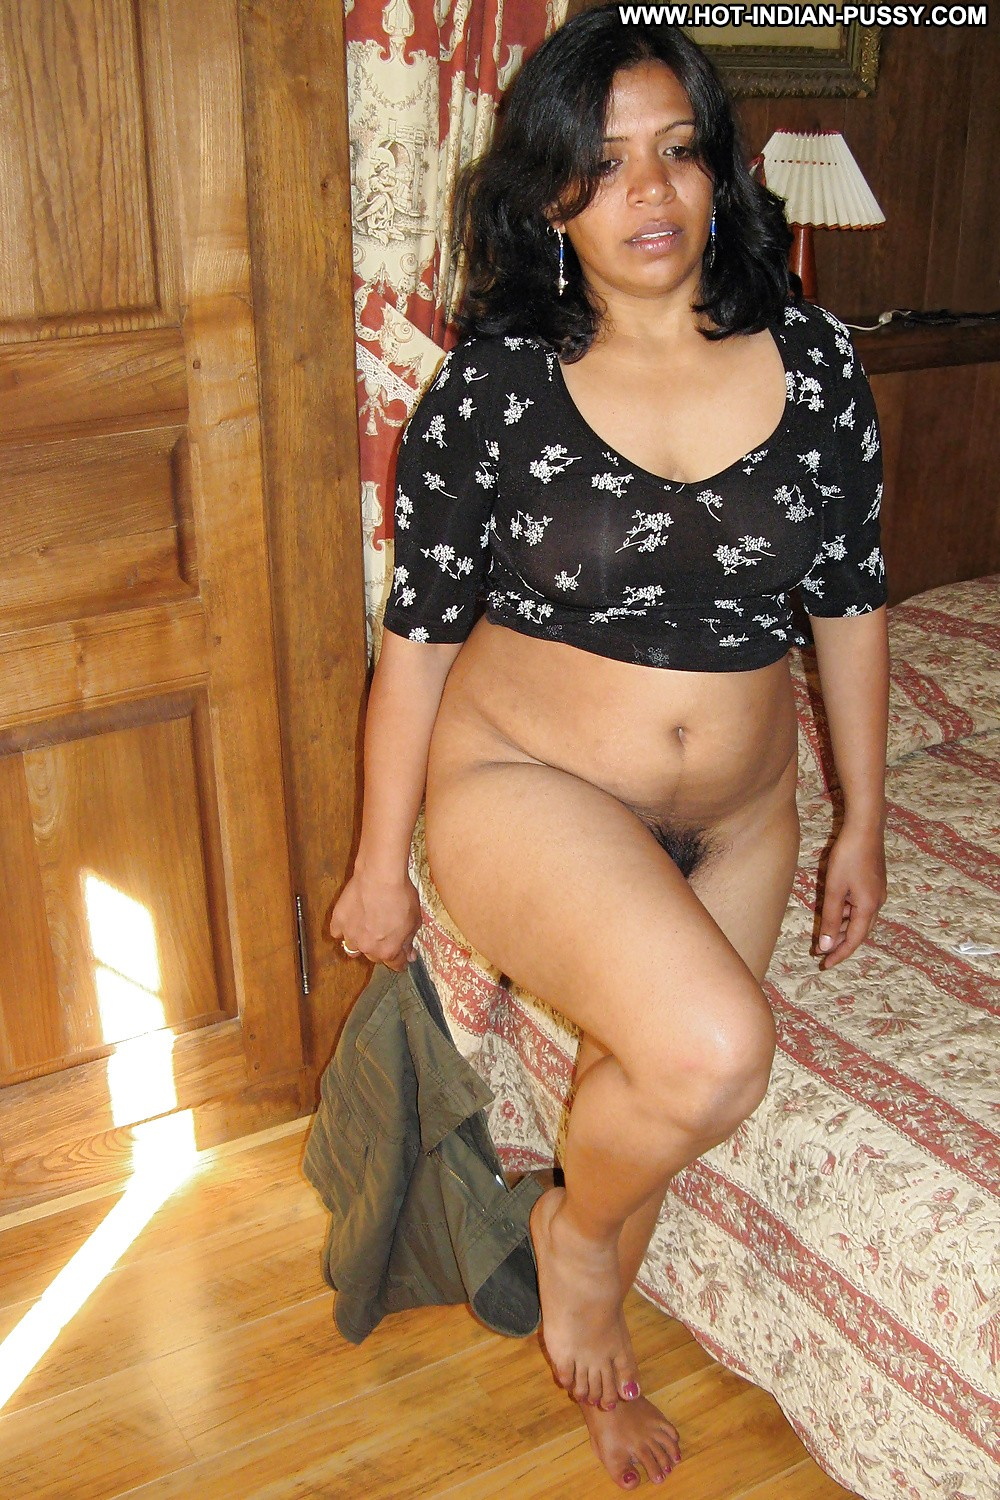 Indian milf gallery-7320